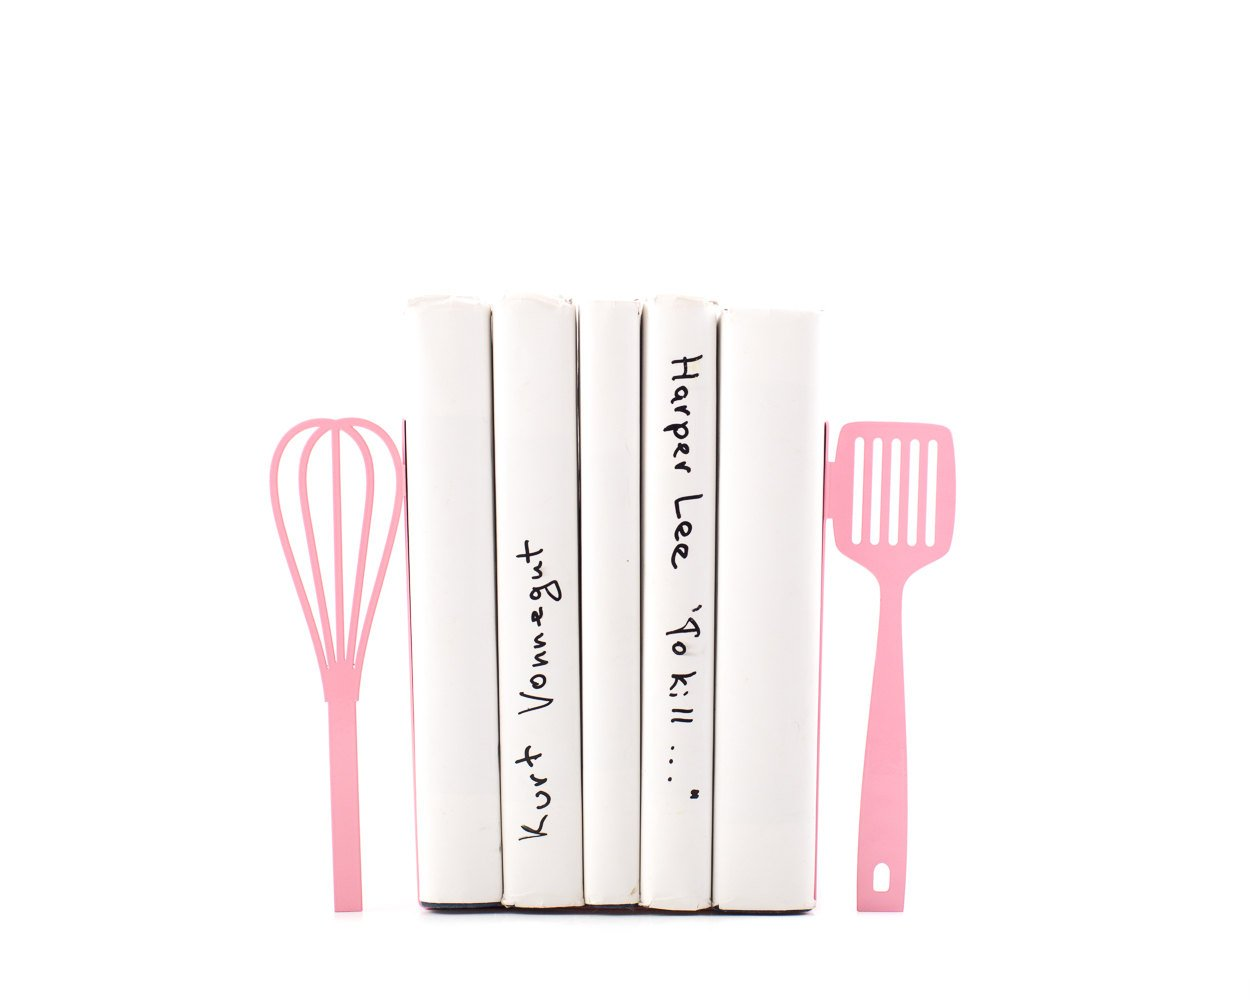 Superbe Unique Metal Kitchen Bookends // Spatula And Whisk // Decorative Holders //  Functional ...